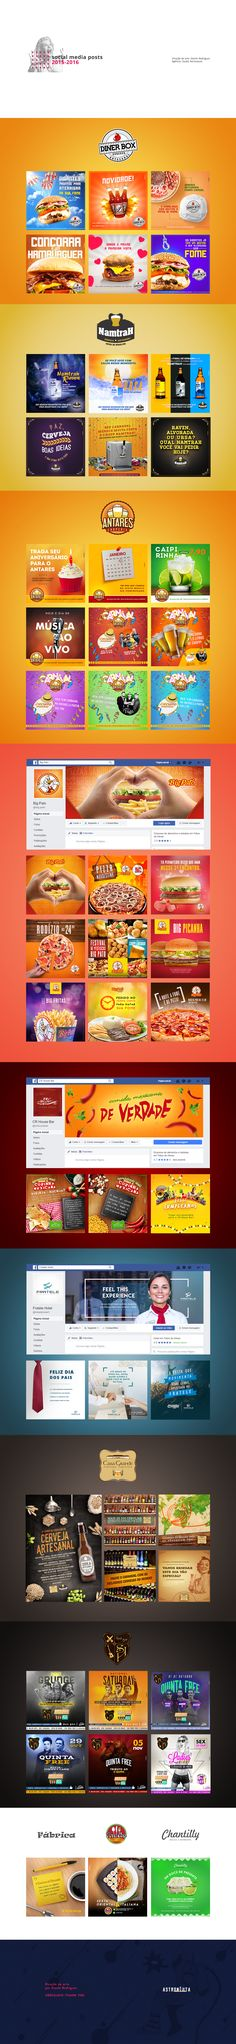 Social Media Posts - on Behance - Tap the link to shop on our official online store! You can also join our affiliate and/or rewards programs for FREE! E-mail Marketing, Social Media Marketing, Social Media Bar, Web Banner, Banners, Instagram Design, Creative Advertising, Social Media Template, Social Media Design